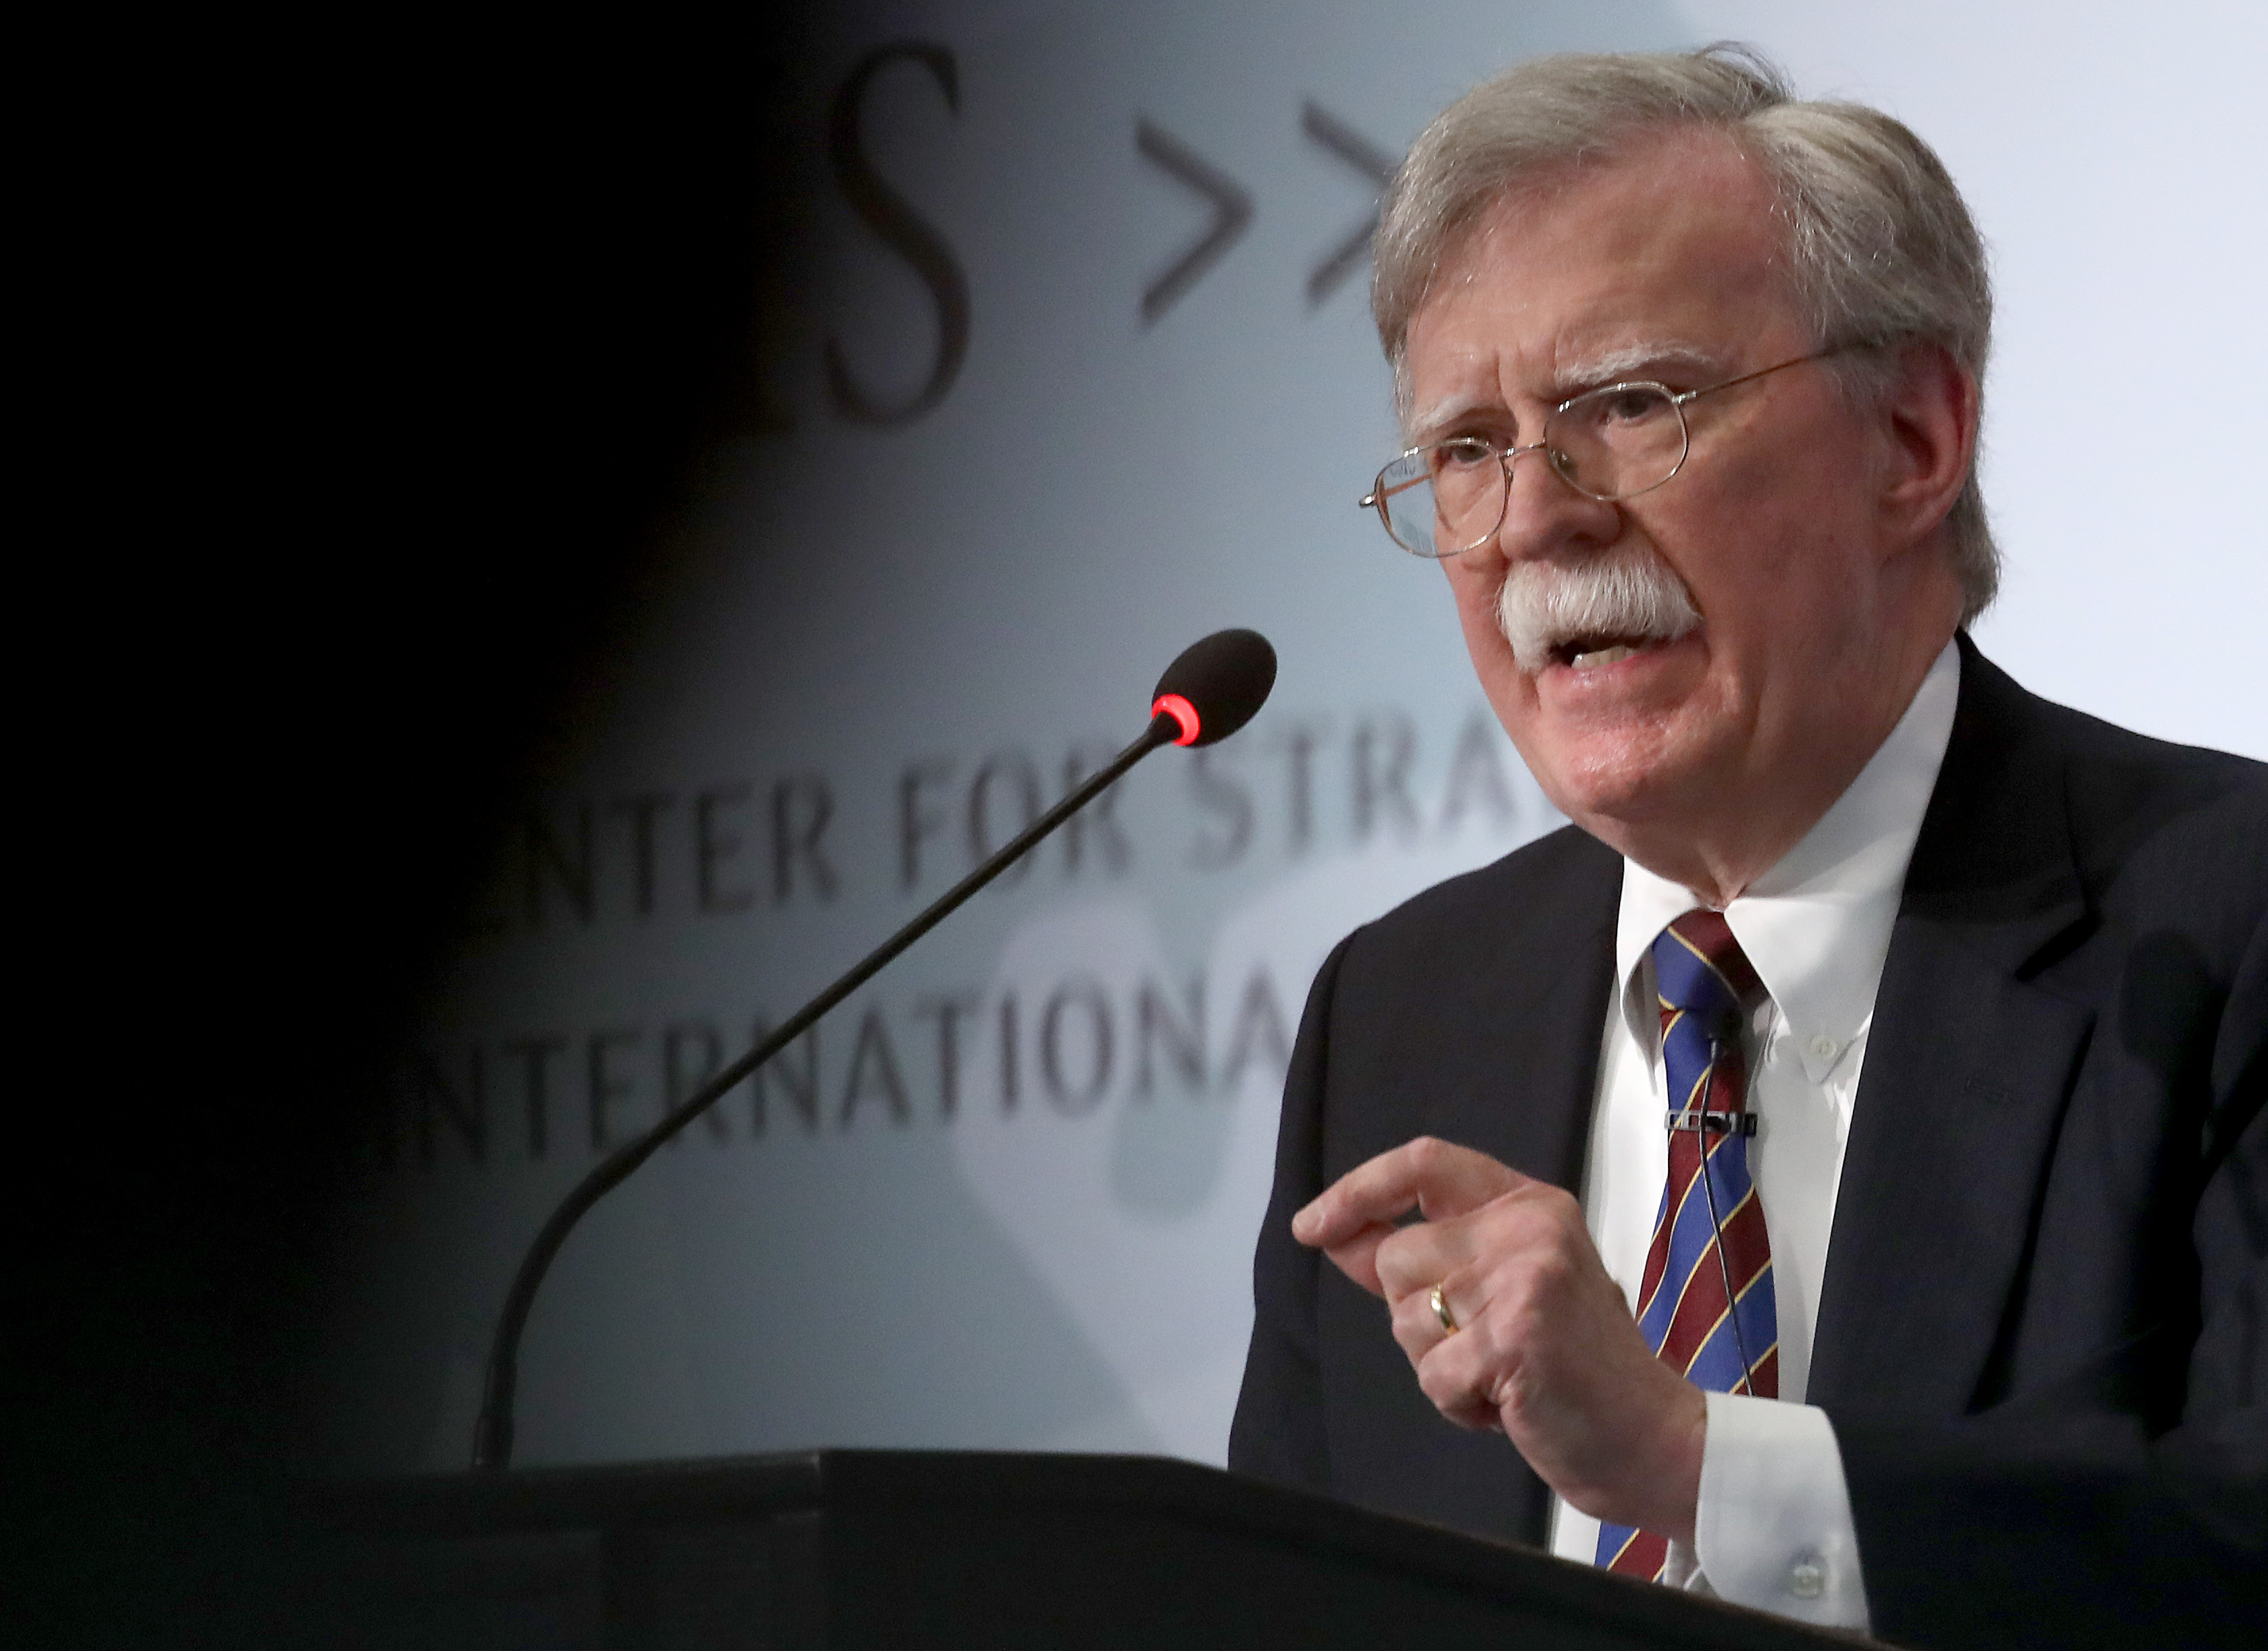 John Bolton speaking at a podium onstage.